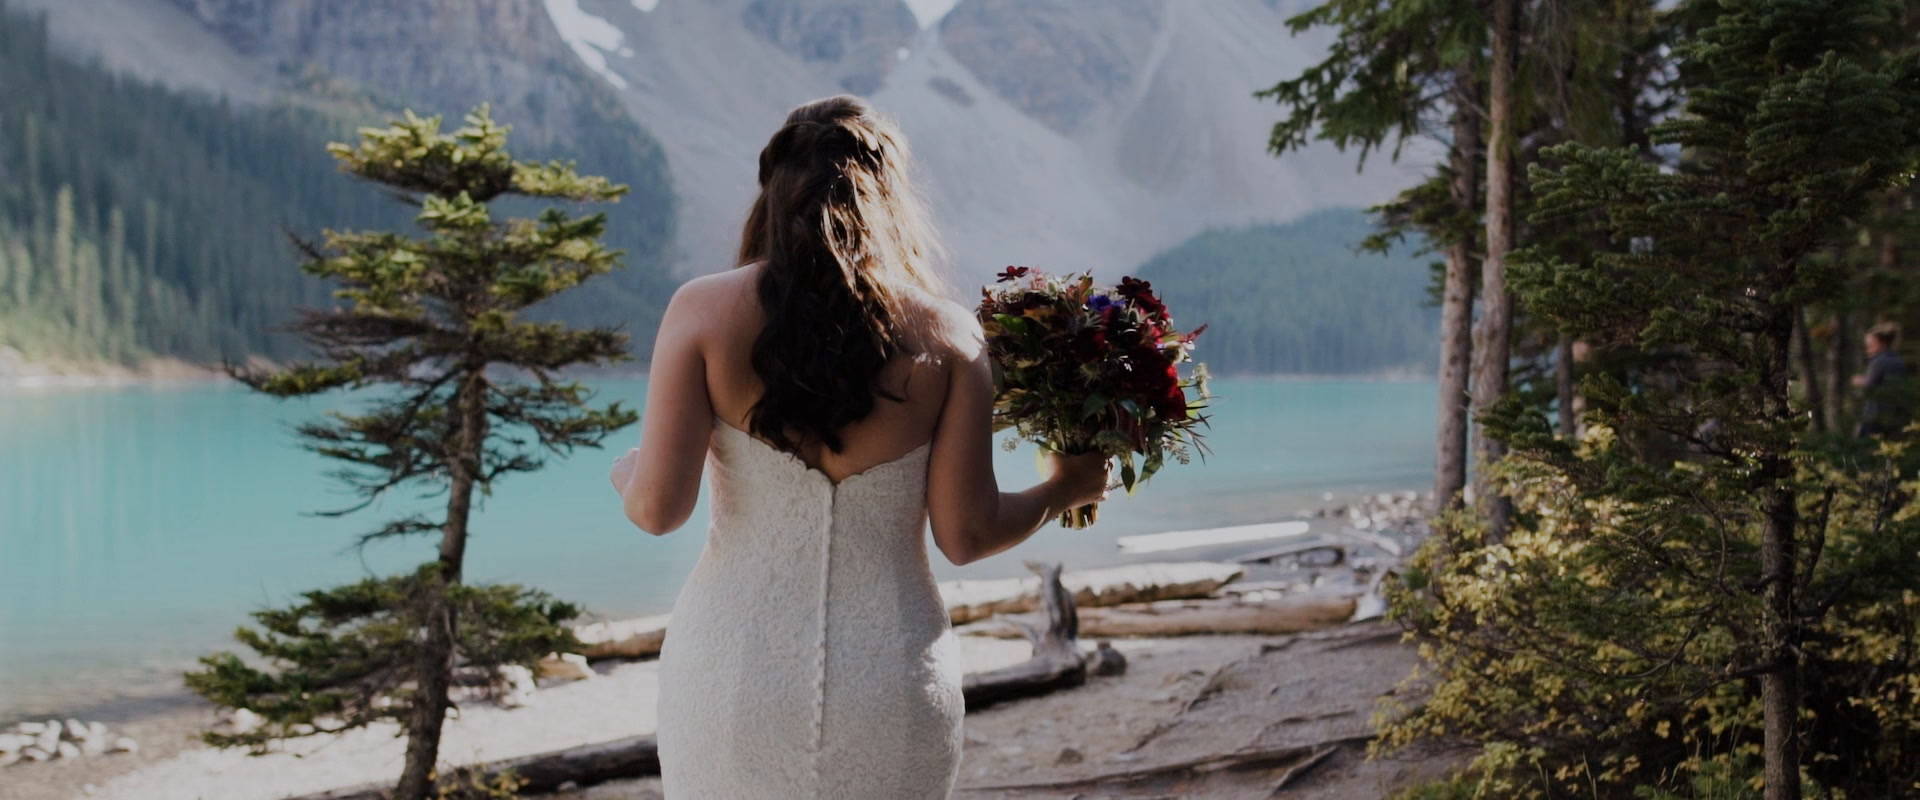 Jessica + John | Banff, Canada | the bison